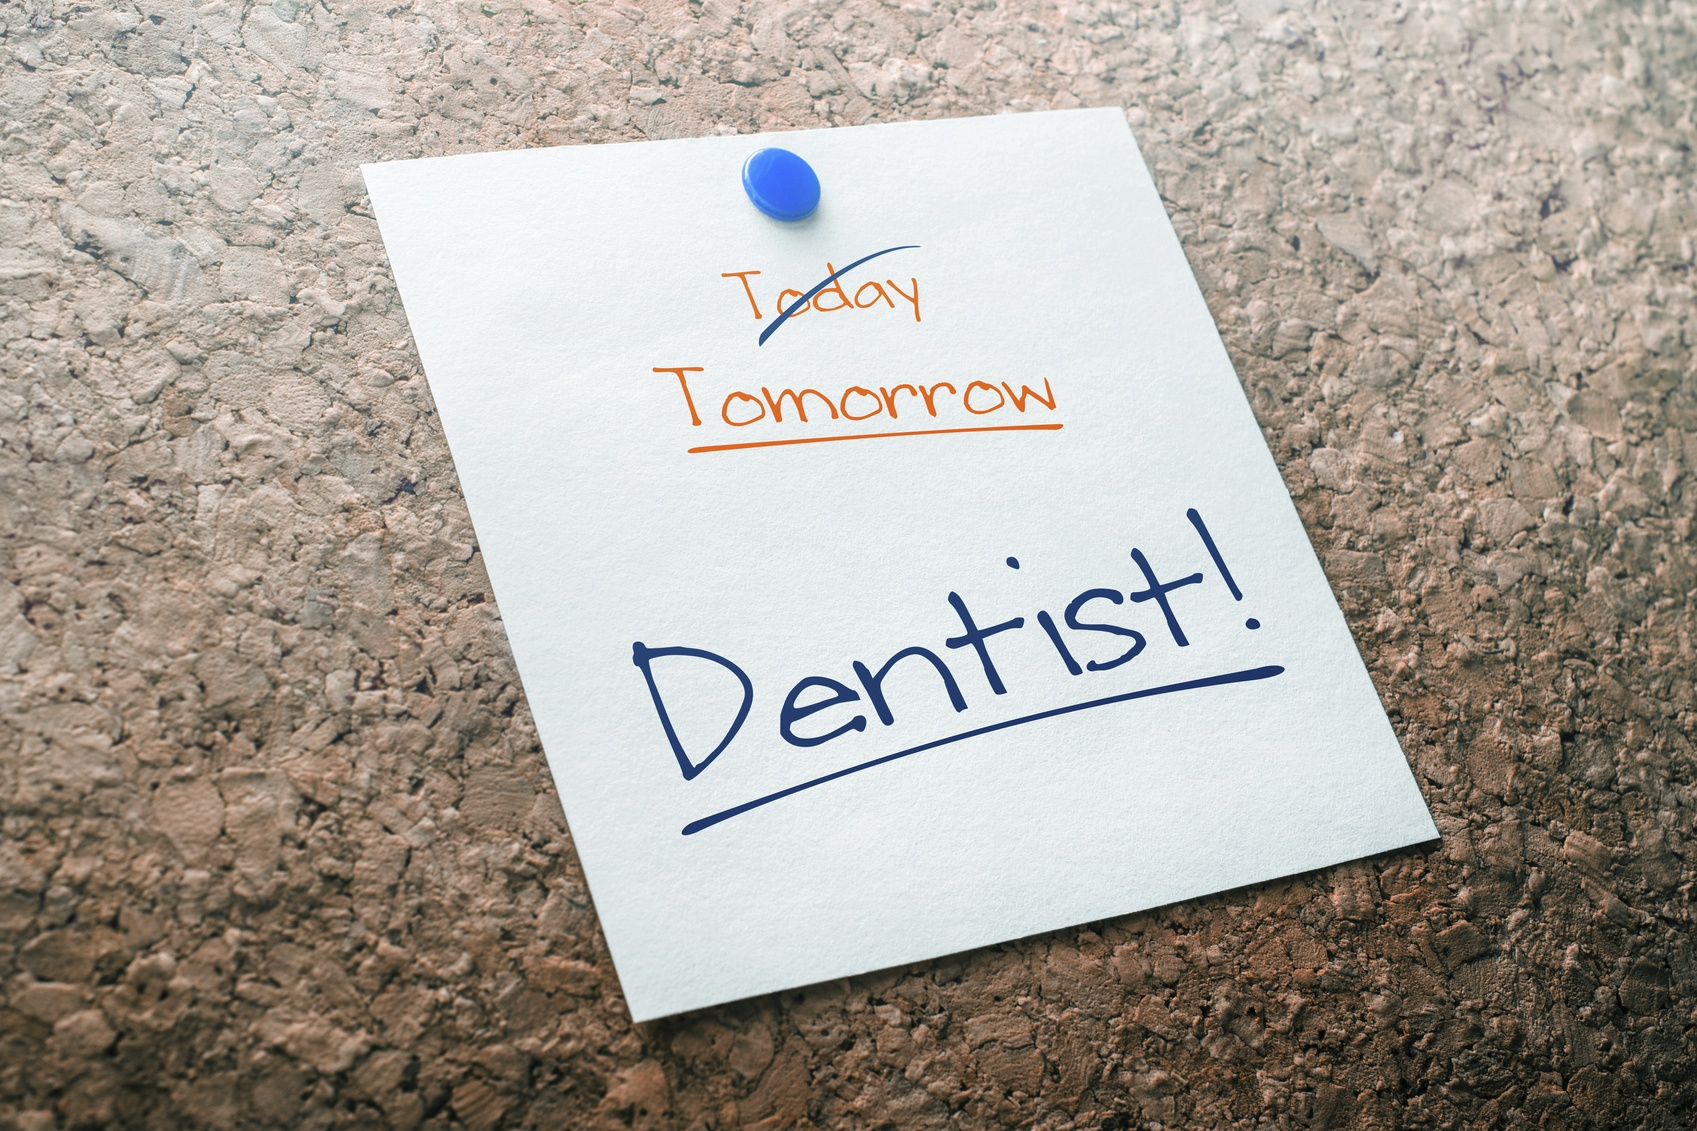 Dentist Reminder For Tomorrow With Crossed Out Today Pinned On Cork Board